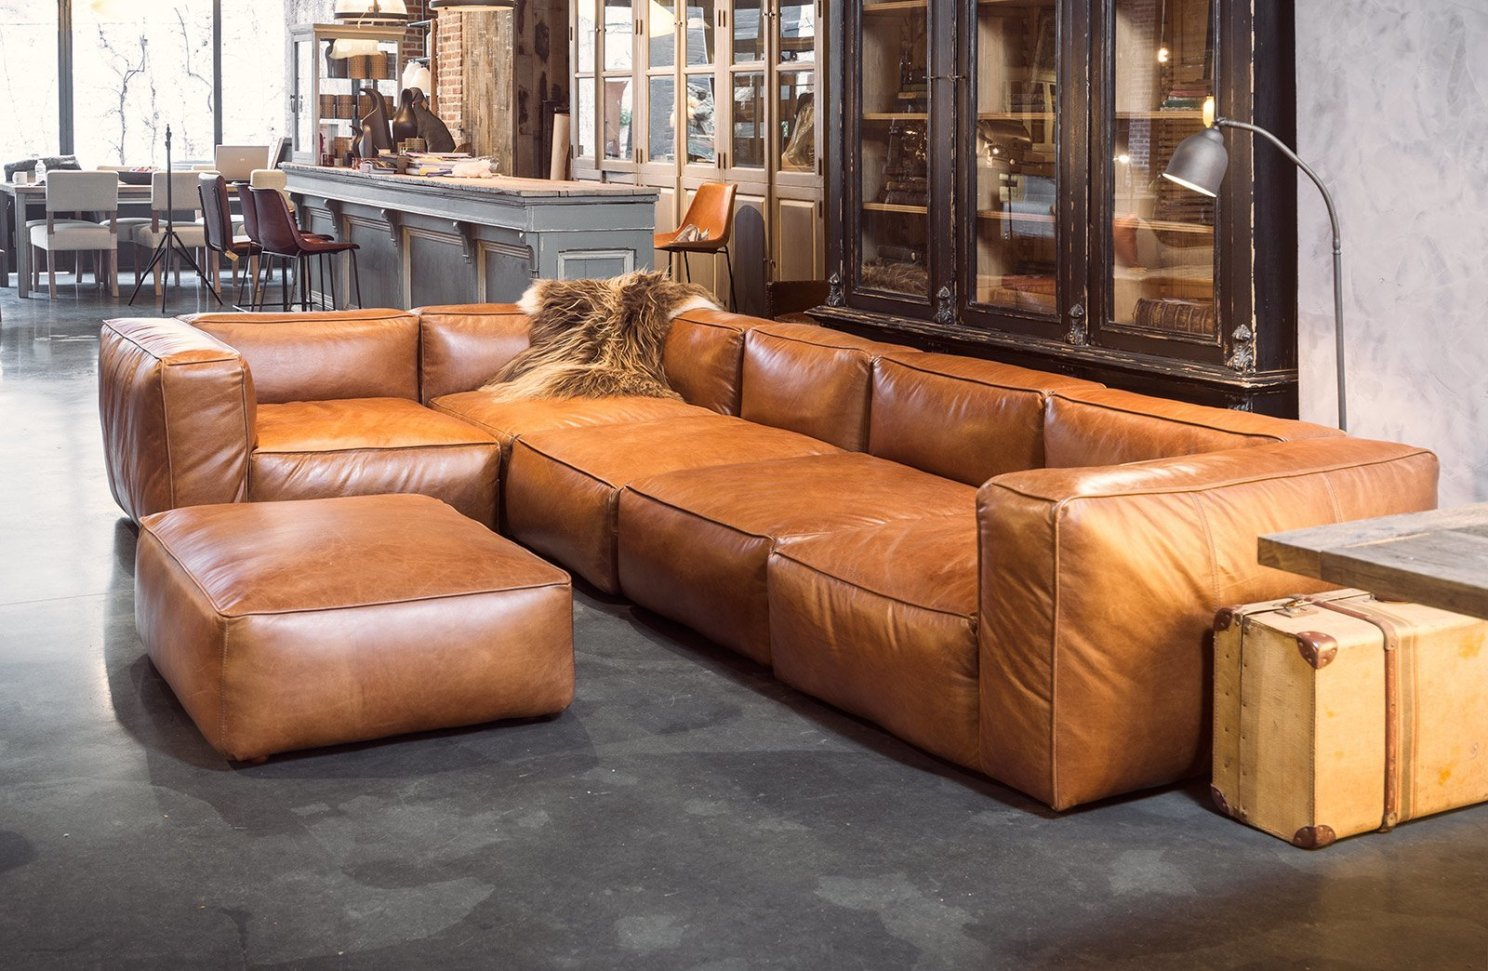 Cognac leather sofas are now on trend for 2017 homes leather sofas